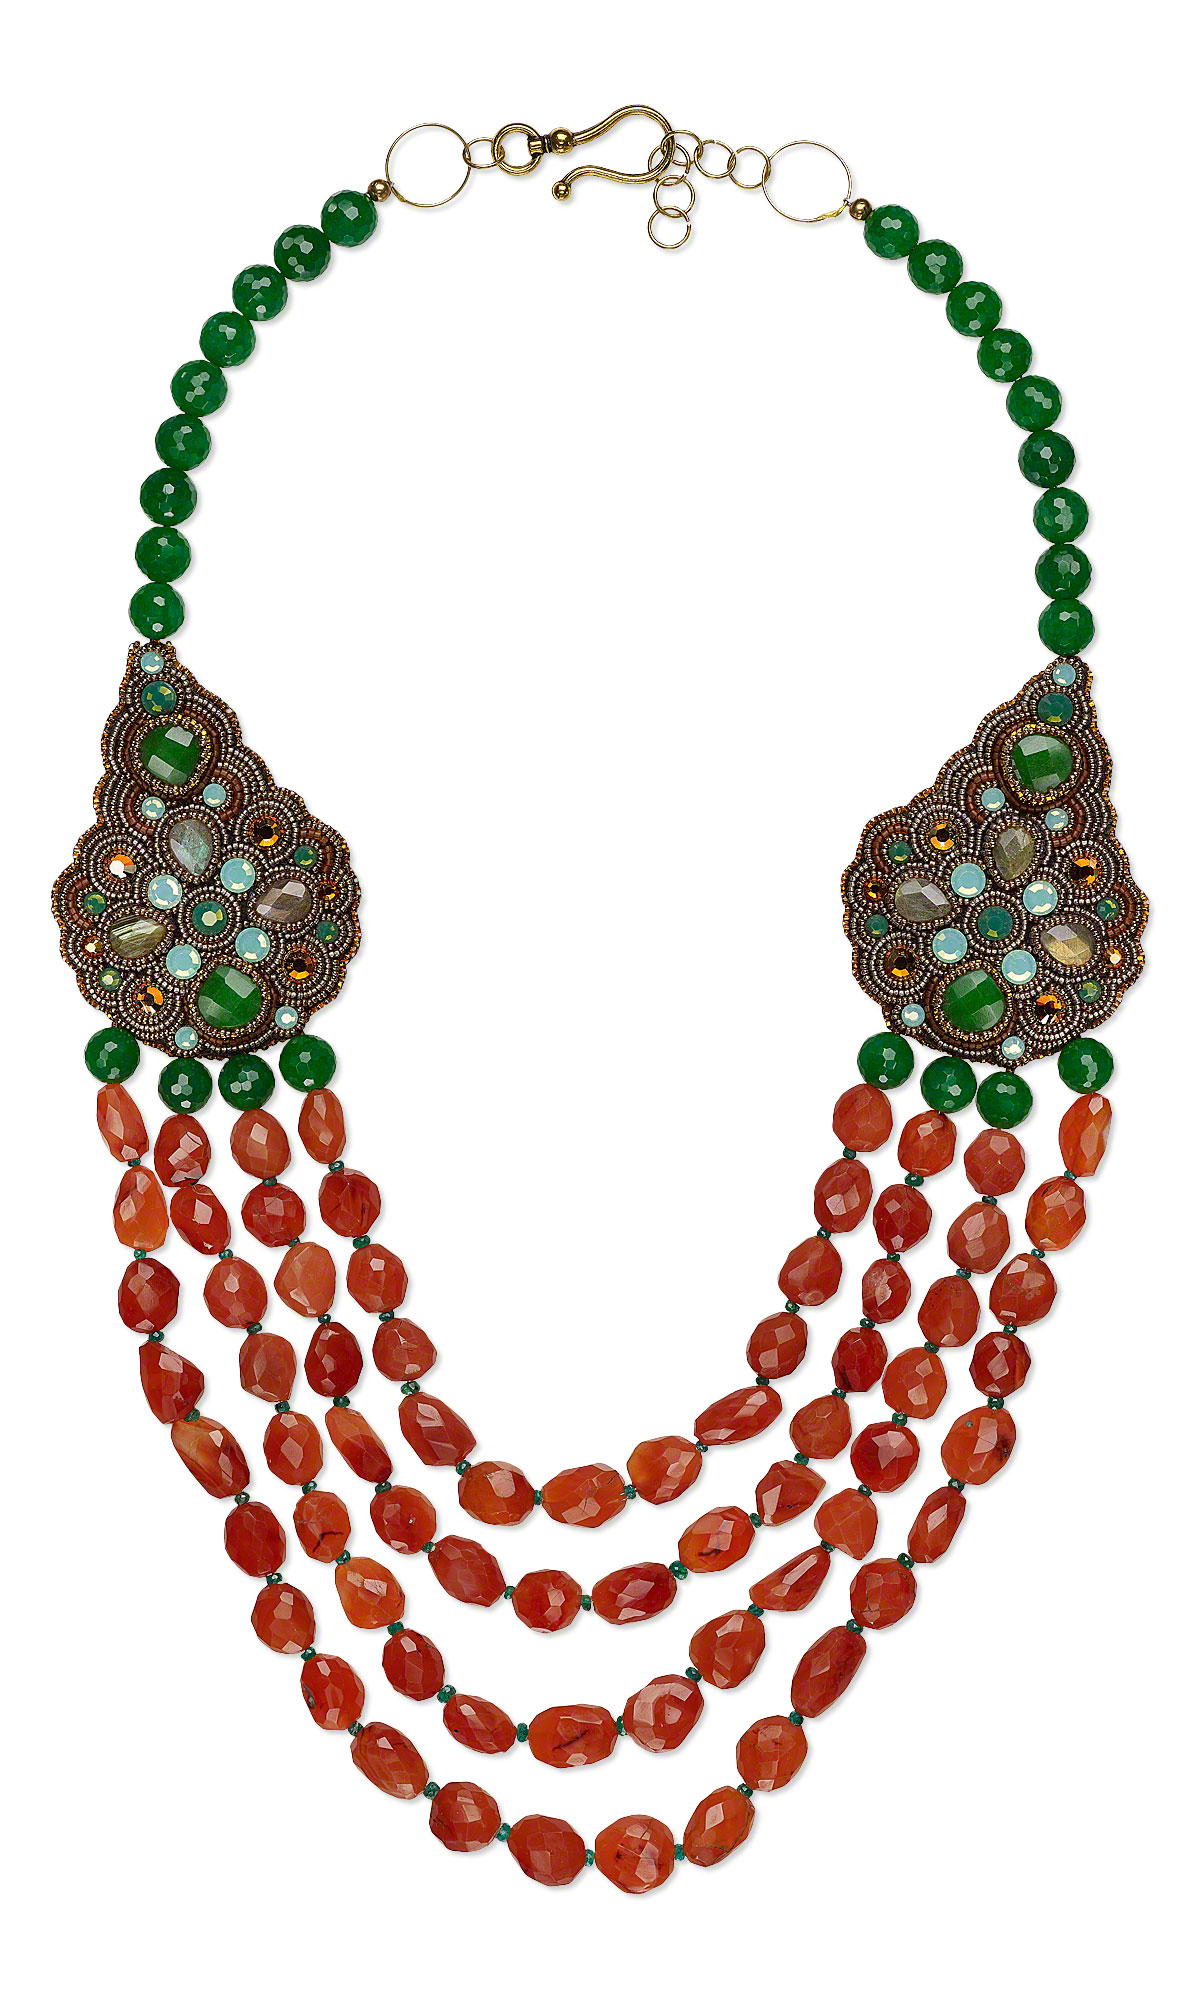 jewelry design multi strand necklace with carnelian gemstone beads